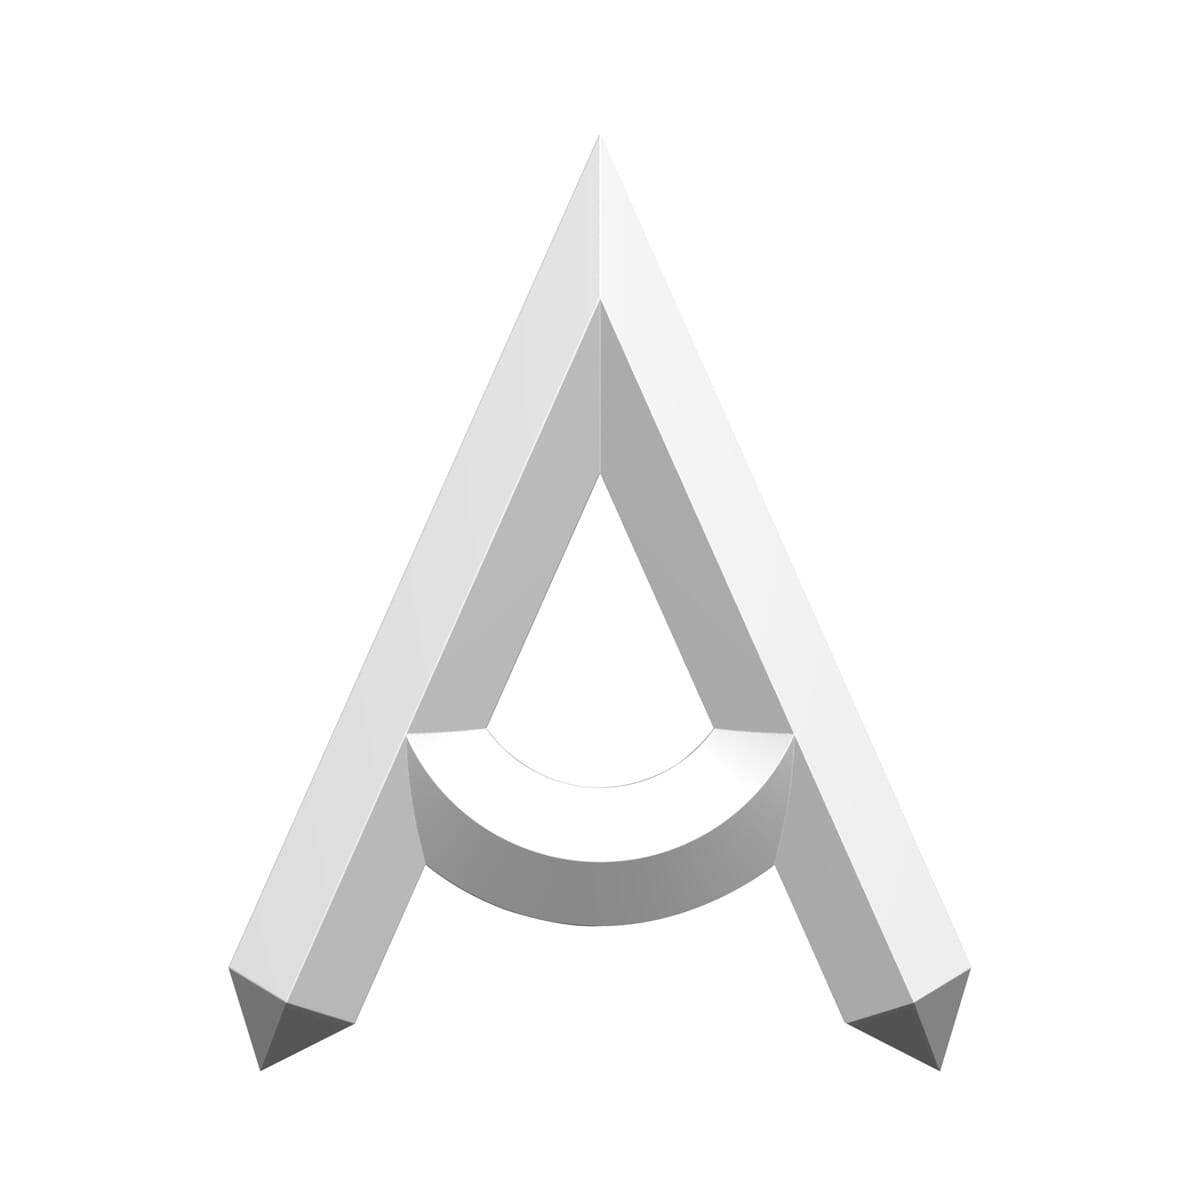 M6 x 25mm Torx Cap Head Captive Screws (ISO 14579) - Aluminium Drawing